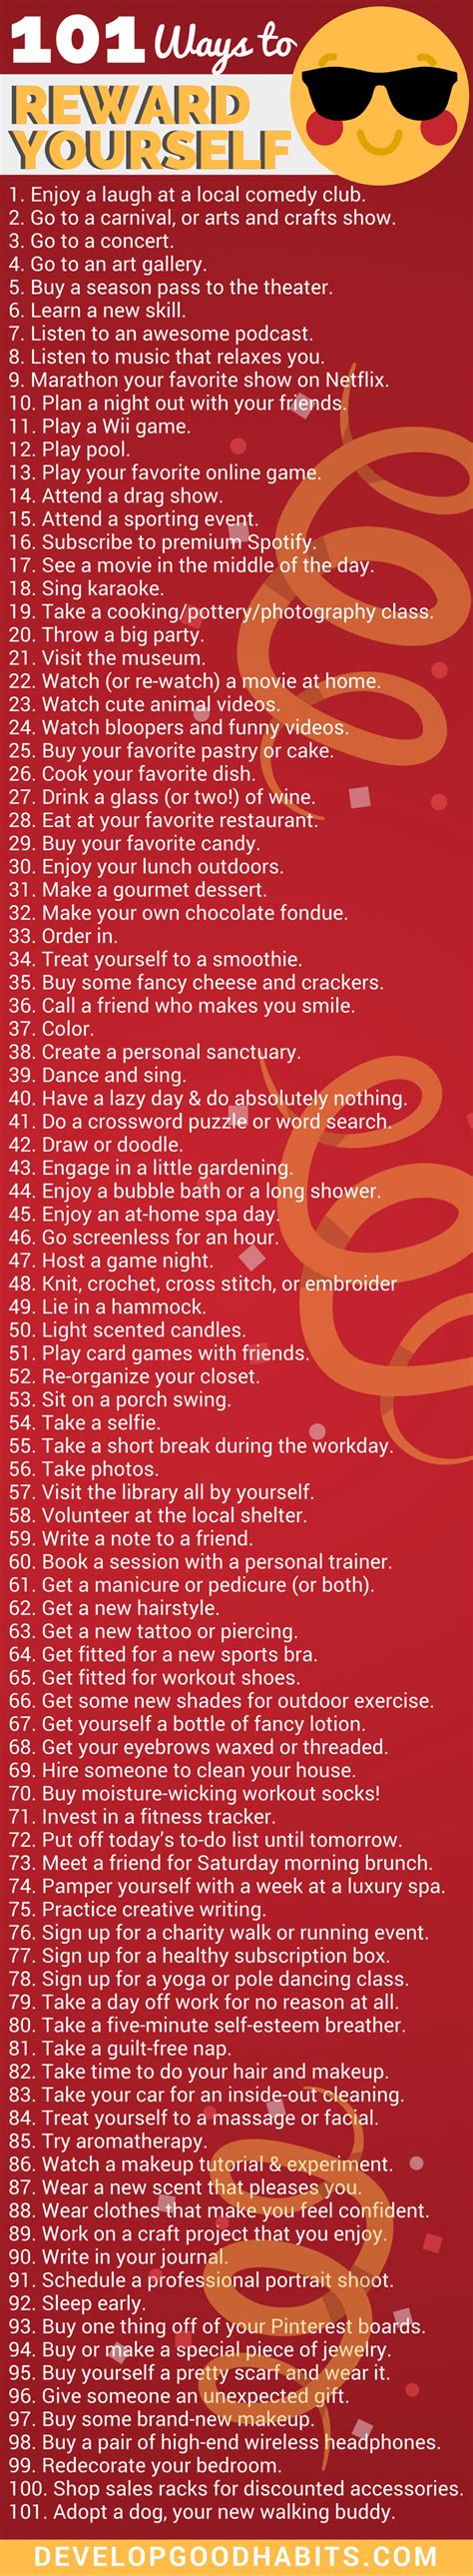 7 Ways To Reward Yourself For 10 by 155 Ways To Reward Yourself For Completing A Goal Or Task